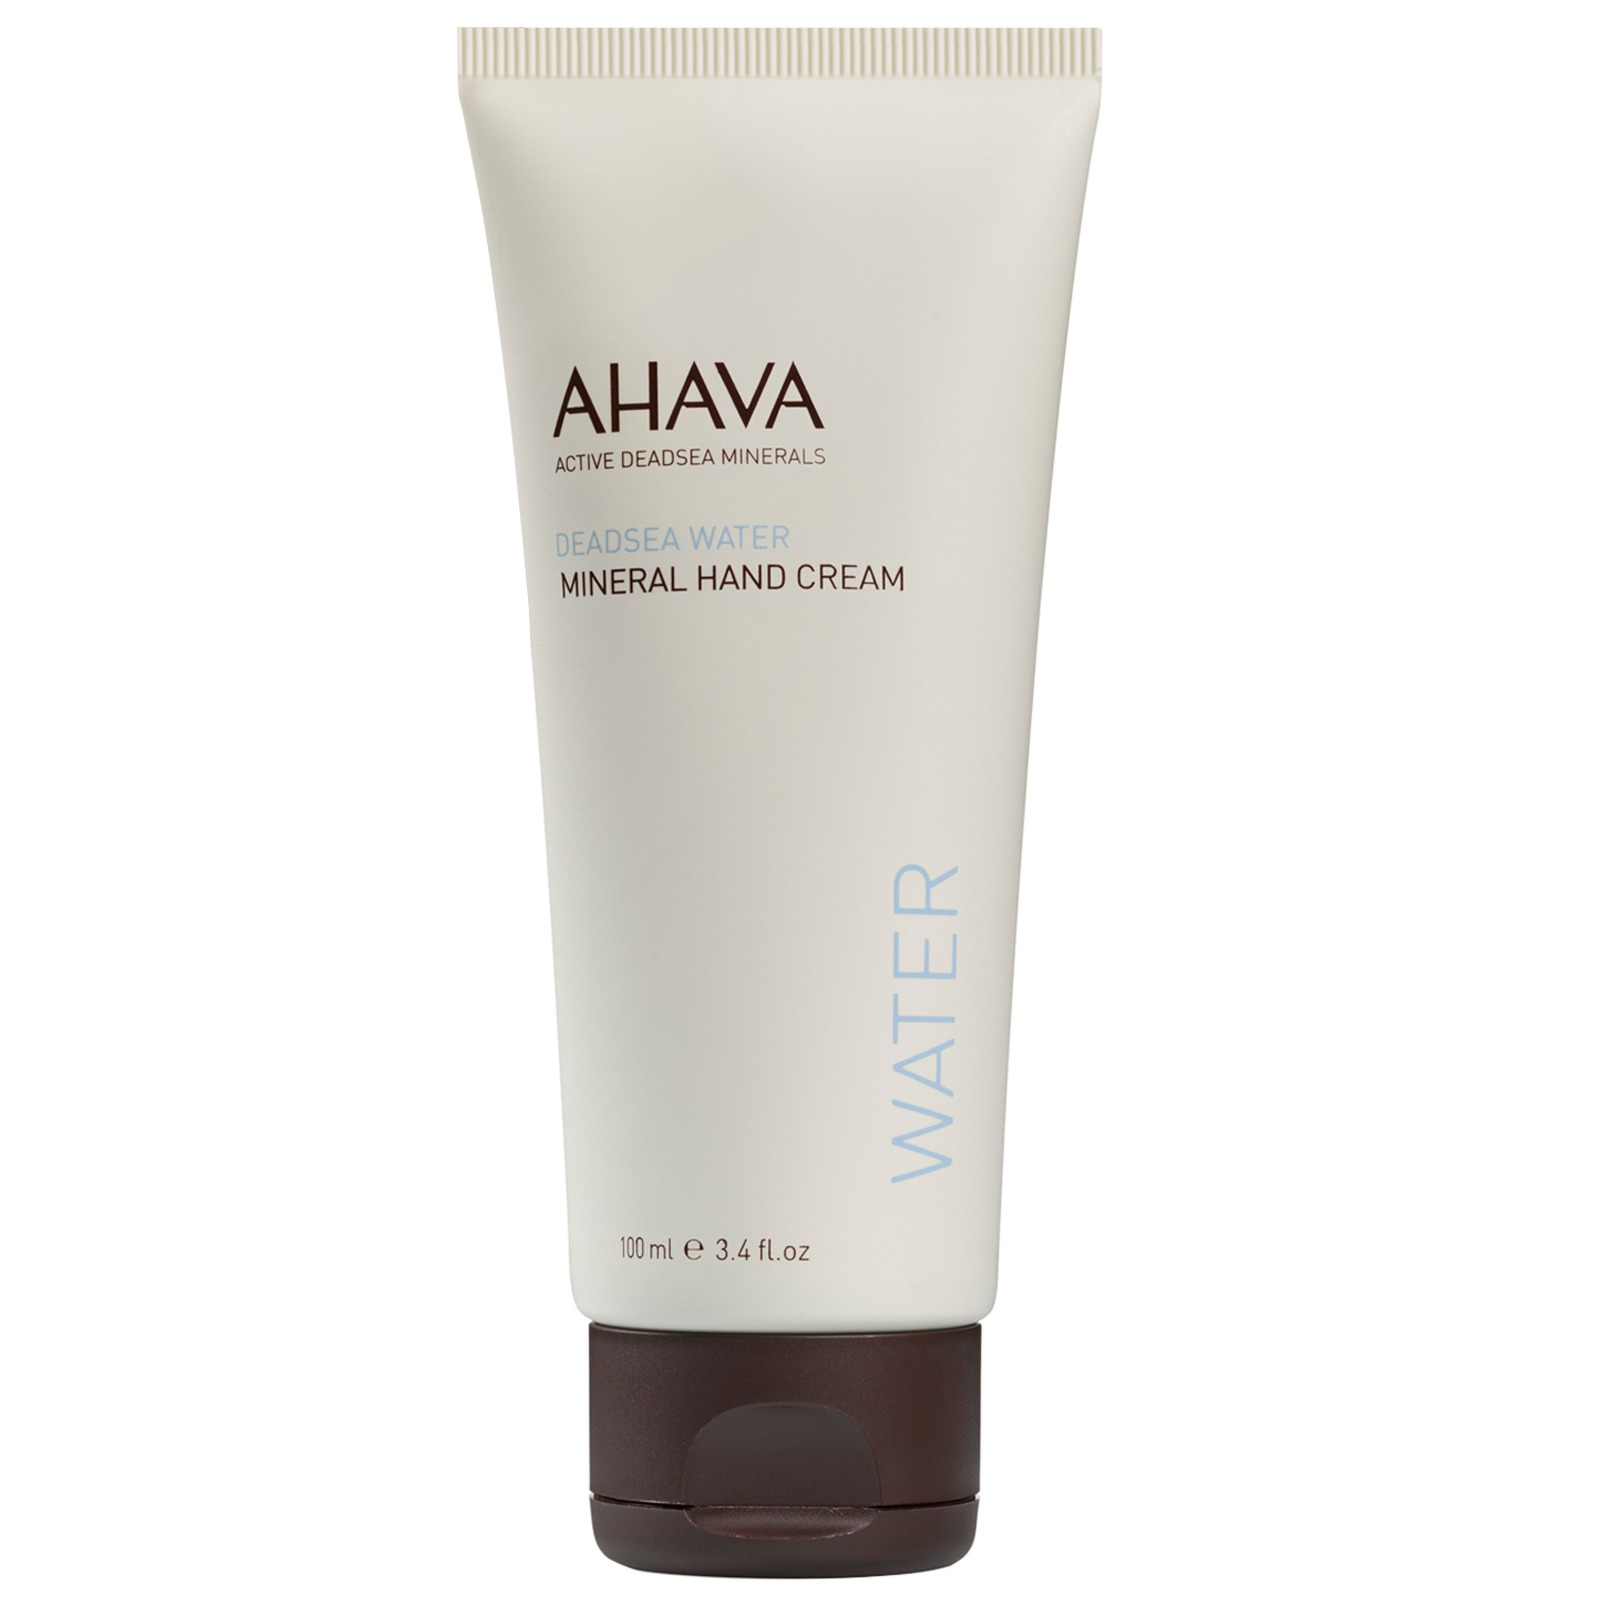 Ahava Water Hydrate Deadsea Water Mineral Hand Cream 100ml